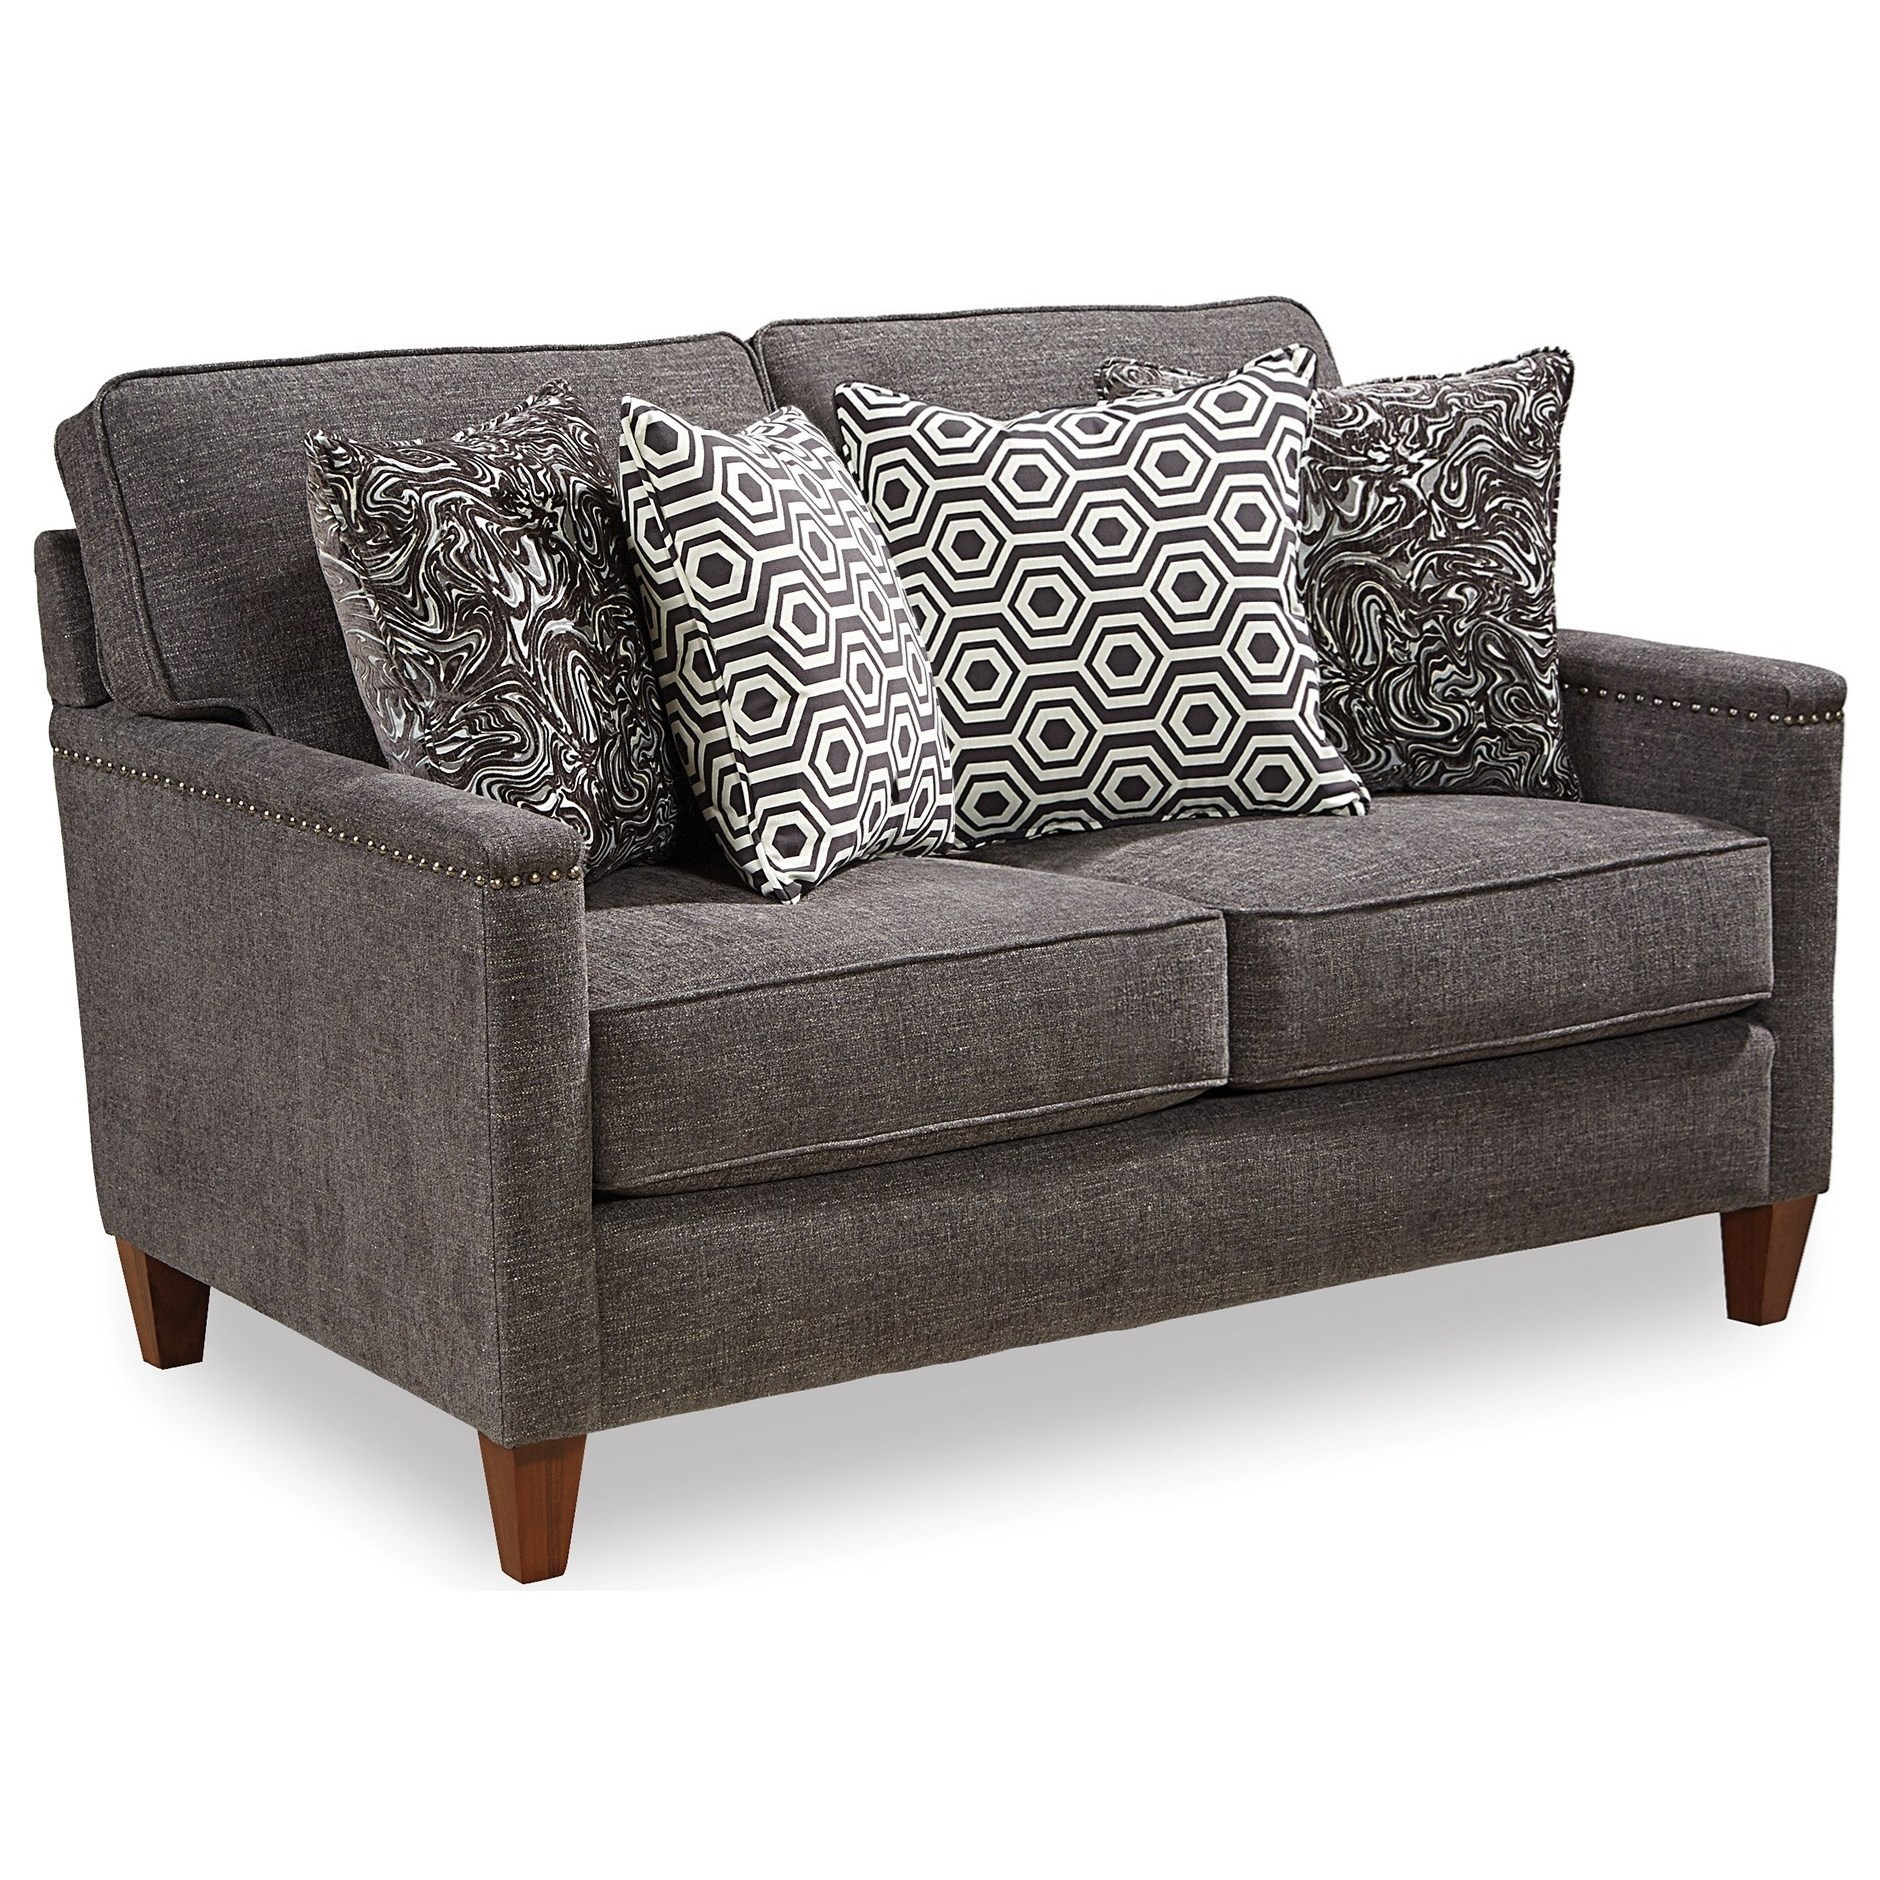 Lawson Contemporary Loveseat With Track Arms And Nailhead Trim By Broyhill  Furniture